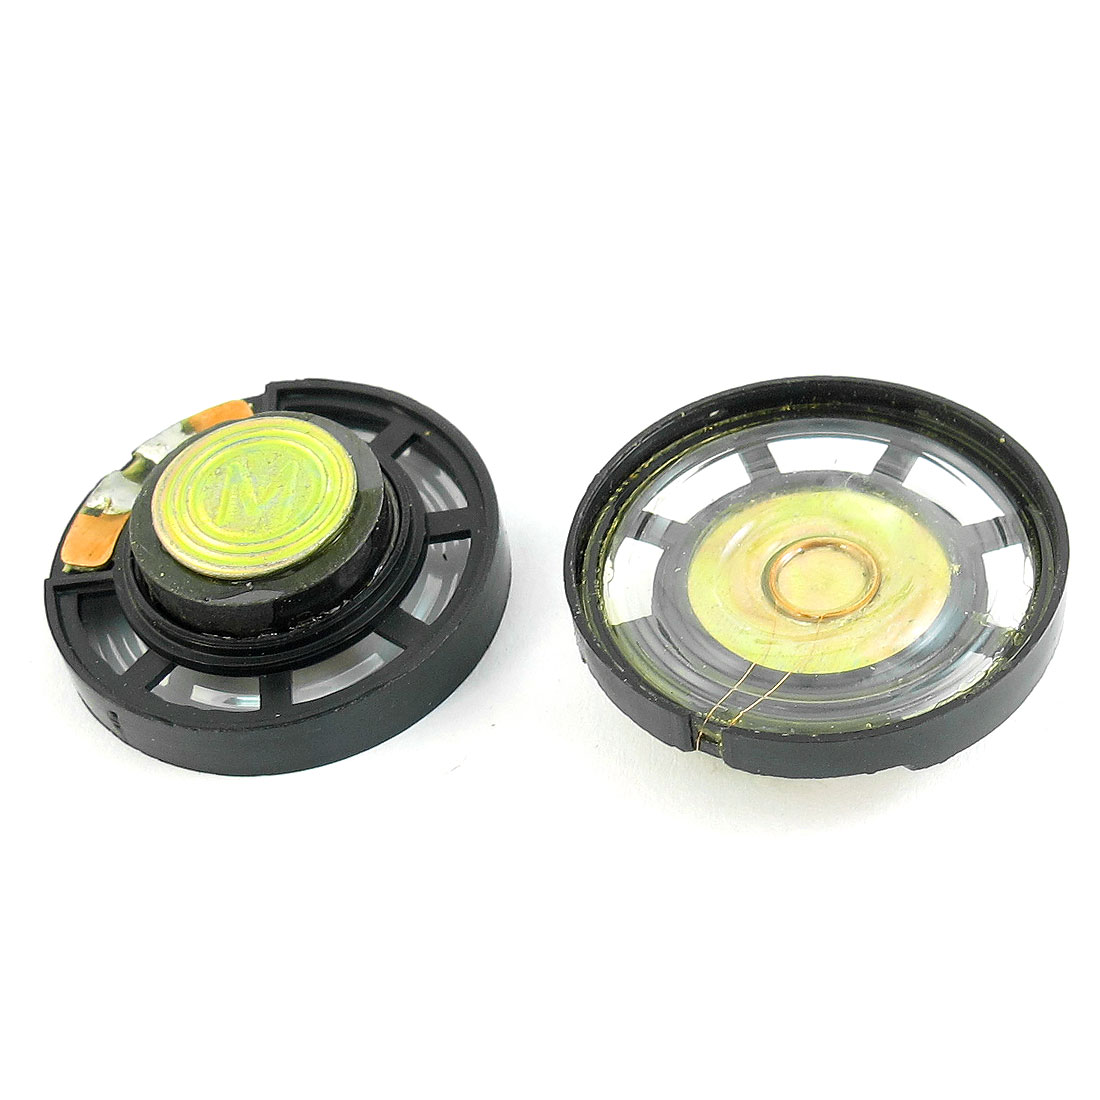 2 Pcs 8 Ohm 0.25W 29mm Diameter Plastic Housing Magnet Speaker Loudspeaker Horn for Radio Electric Toys